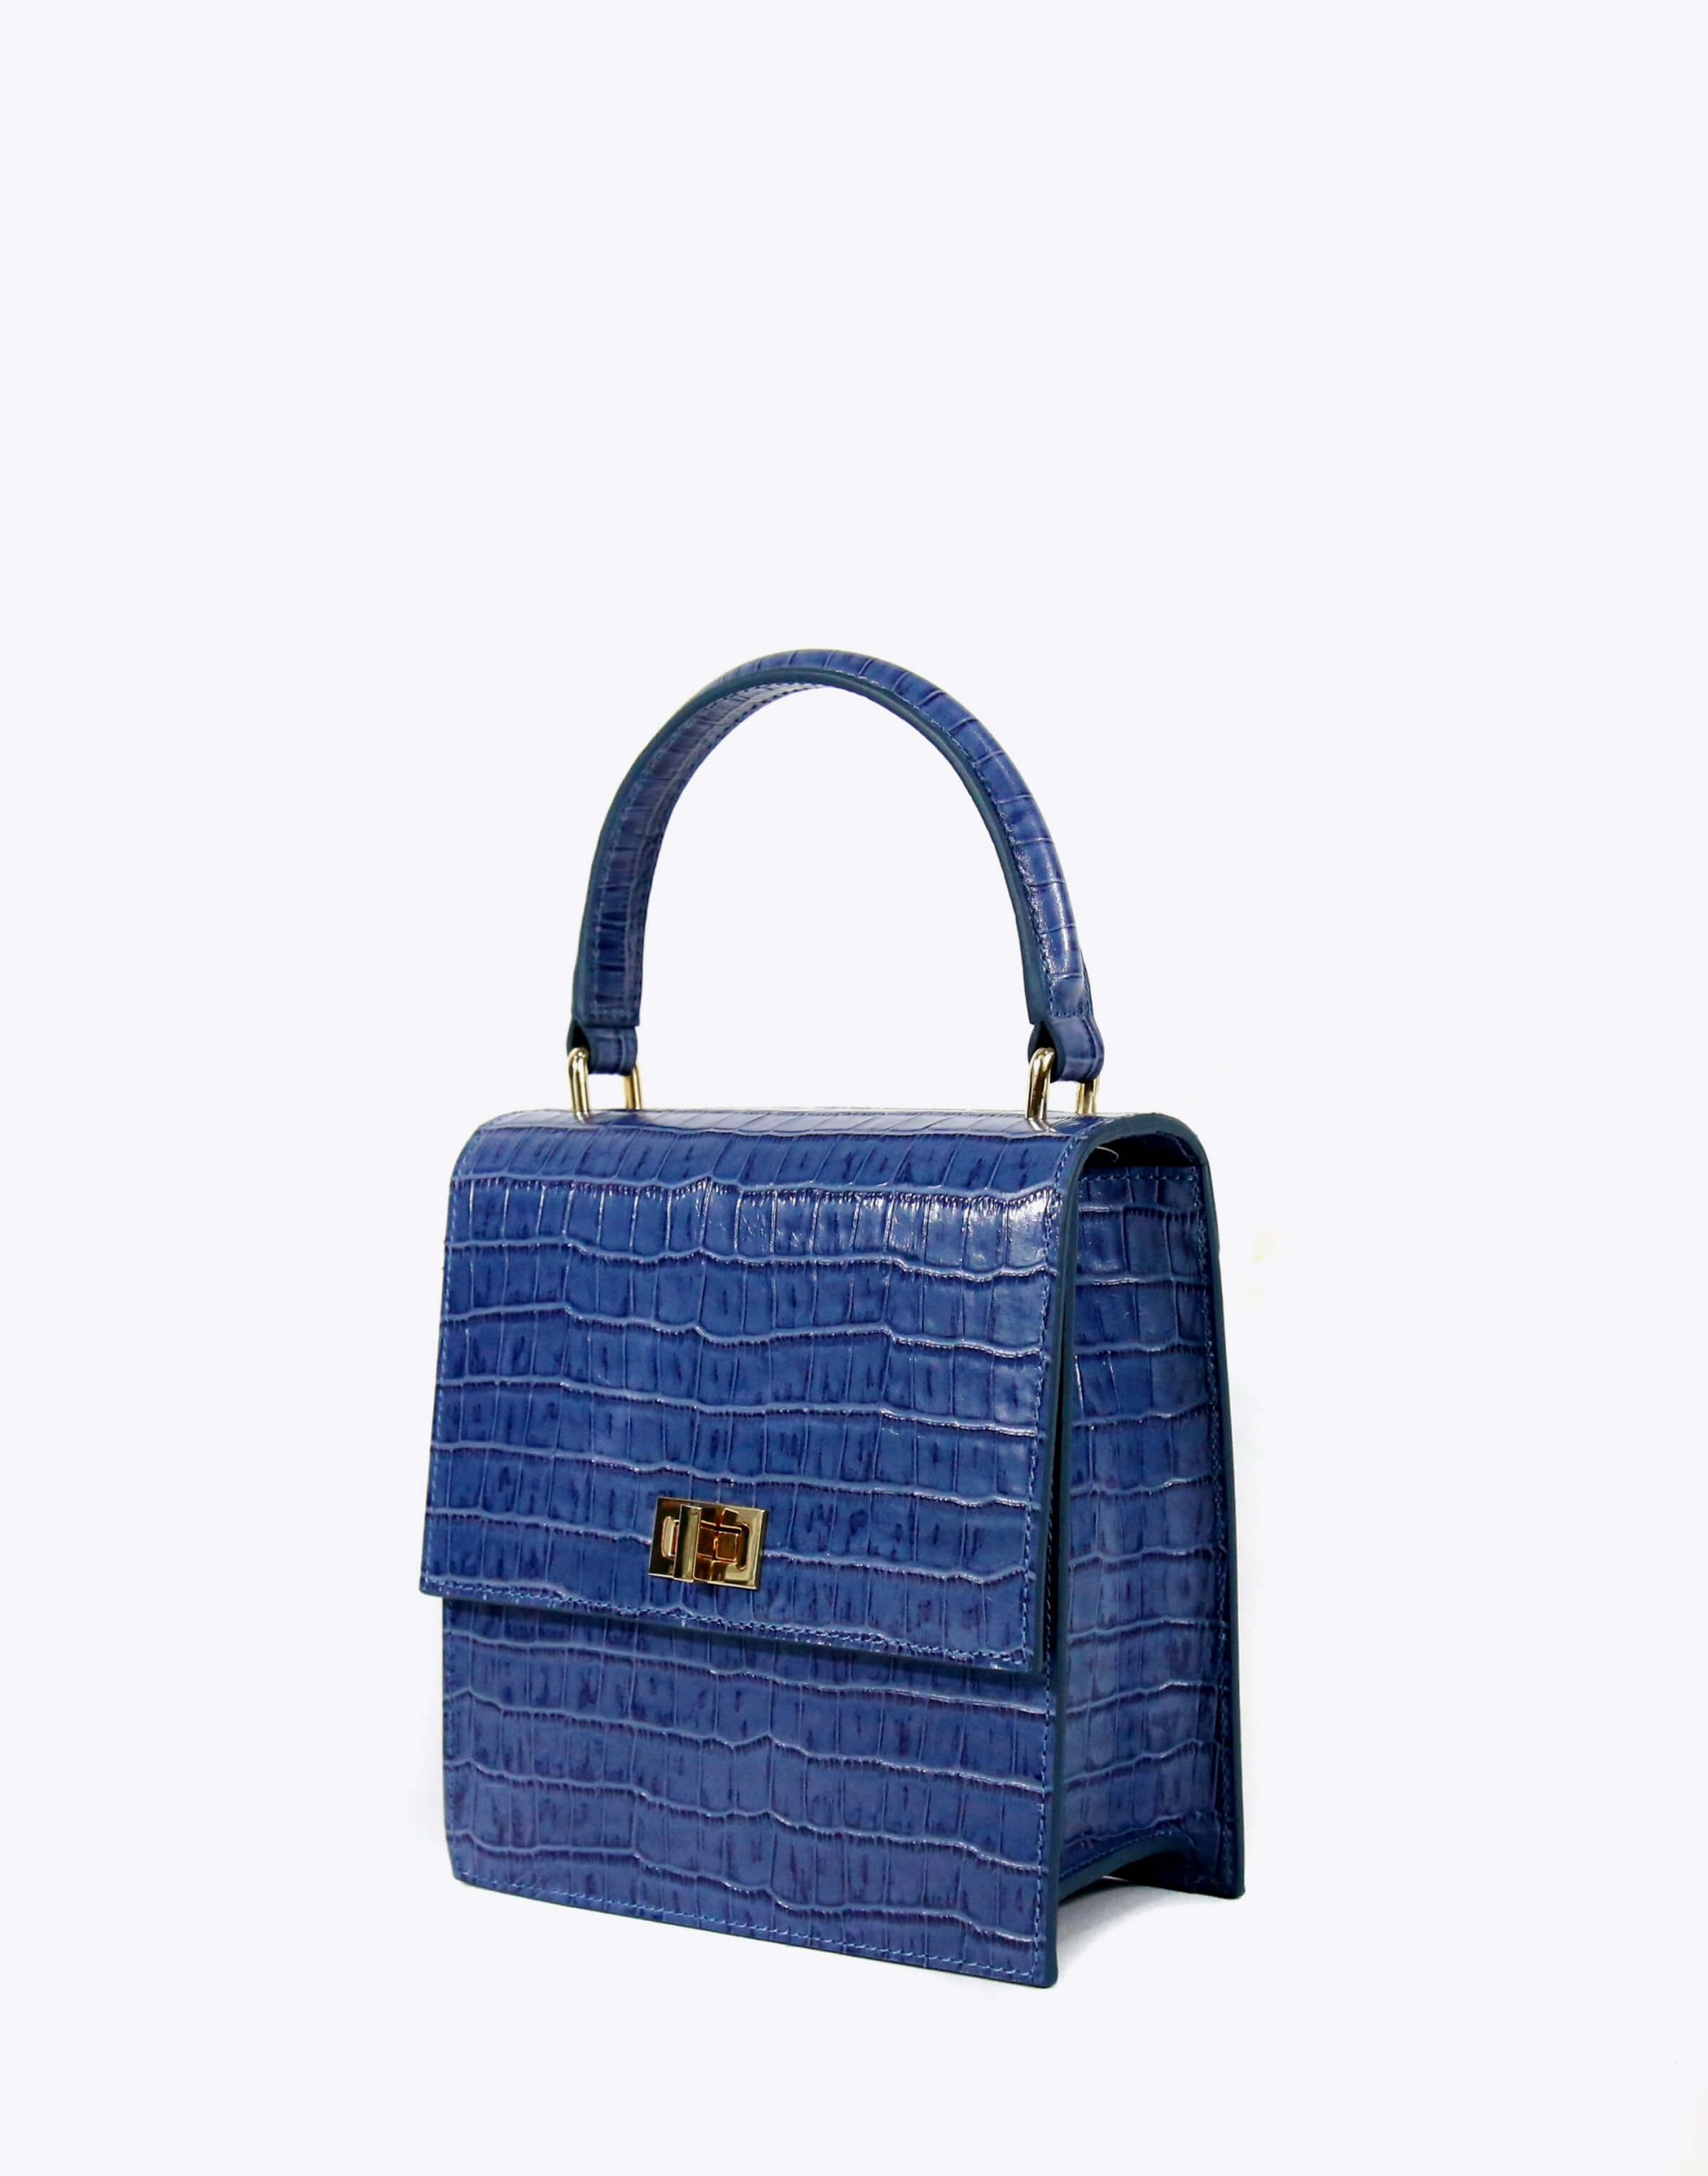 Neely & Chloe No. 19 Mini Lady Bag Croc Angle View Moonlight Blue